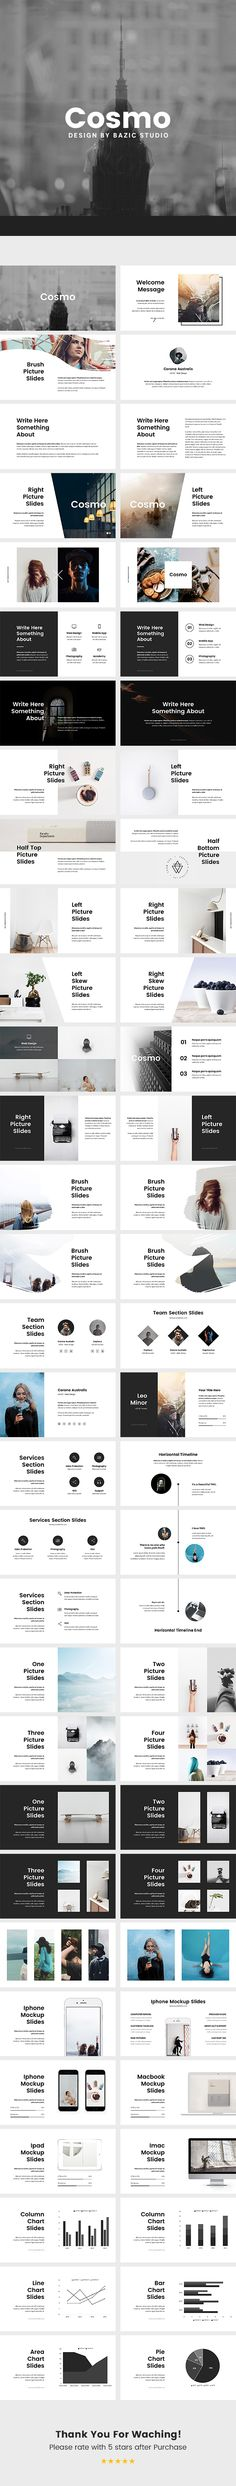 Cosmo Minimal Keynote Template #gallery #slideshow • Download ➝ https://graphicriver.net/item/cosmo-minimal-keynote-template/18738527?ref=pxcr